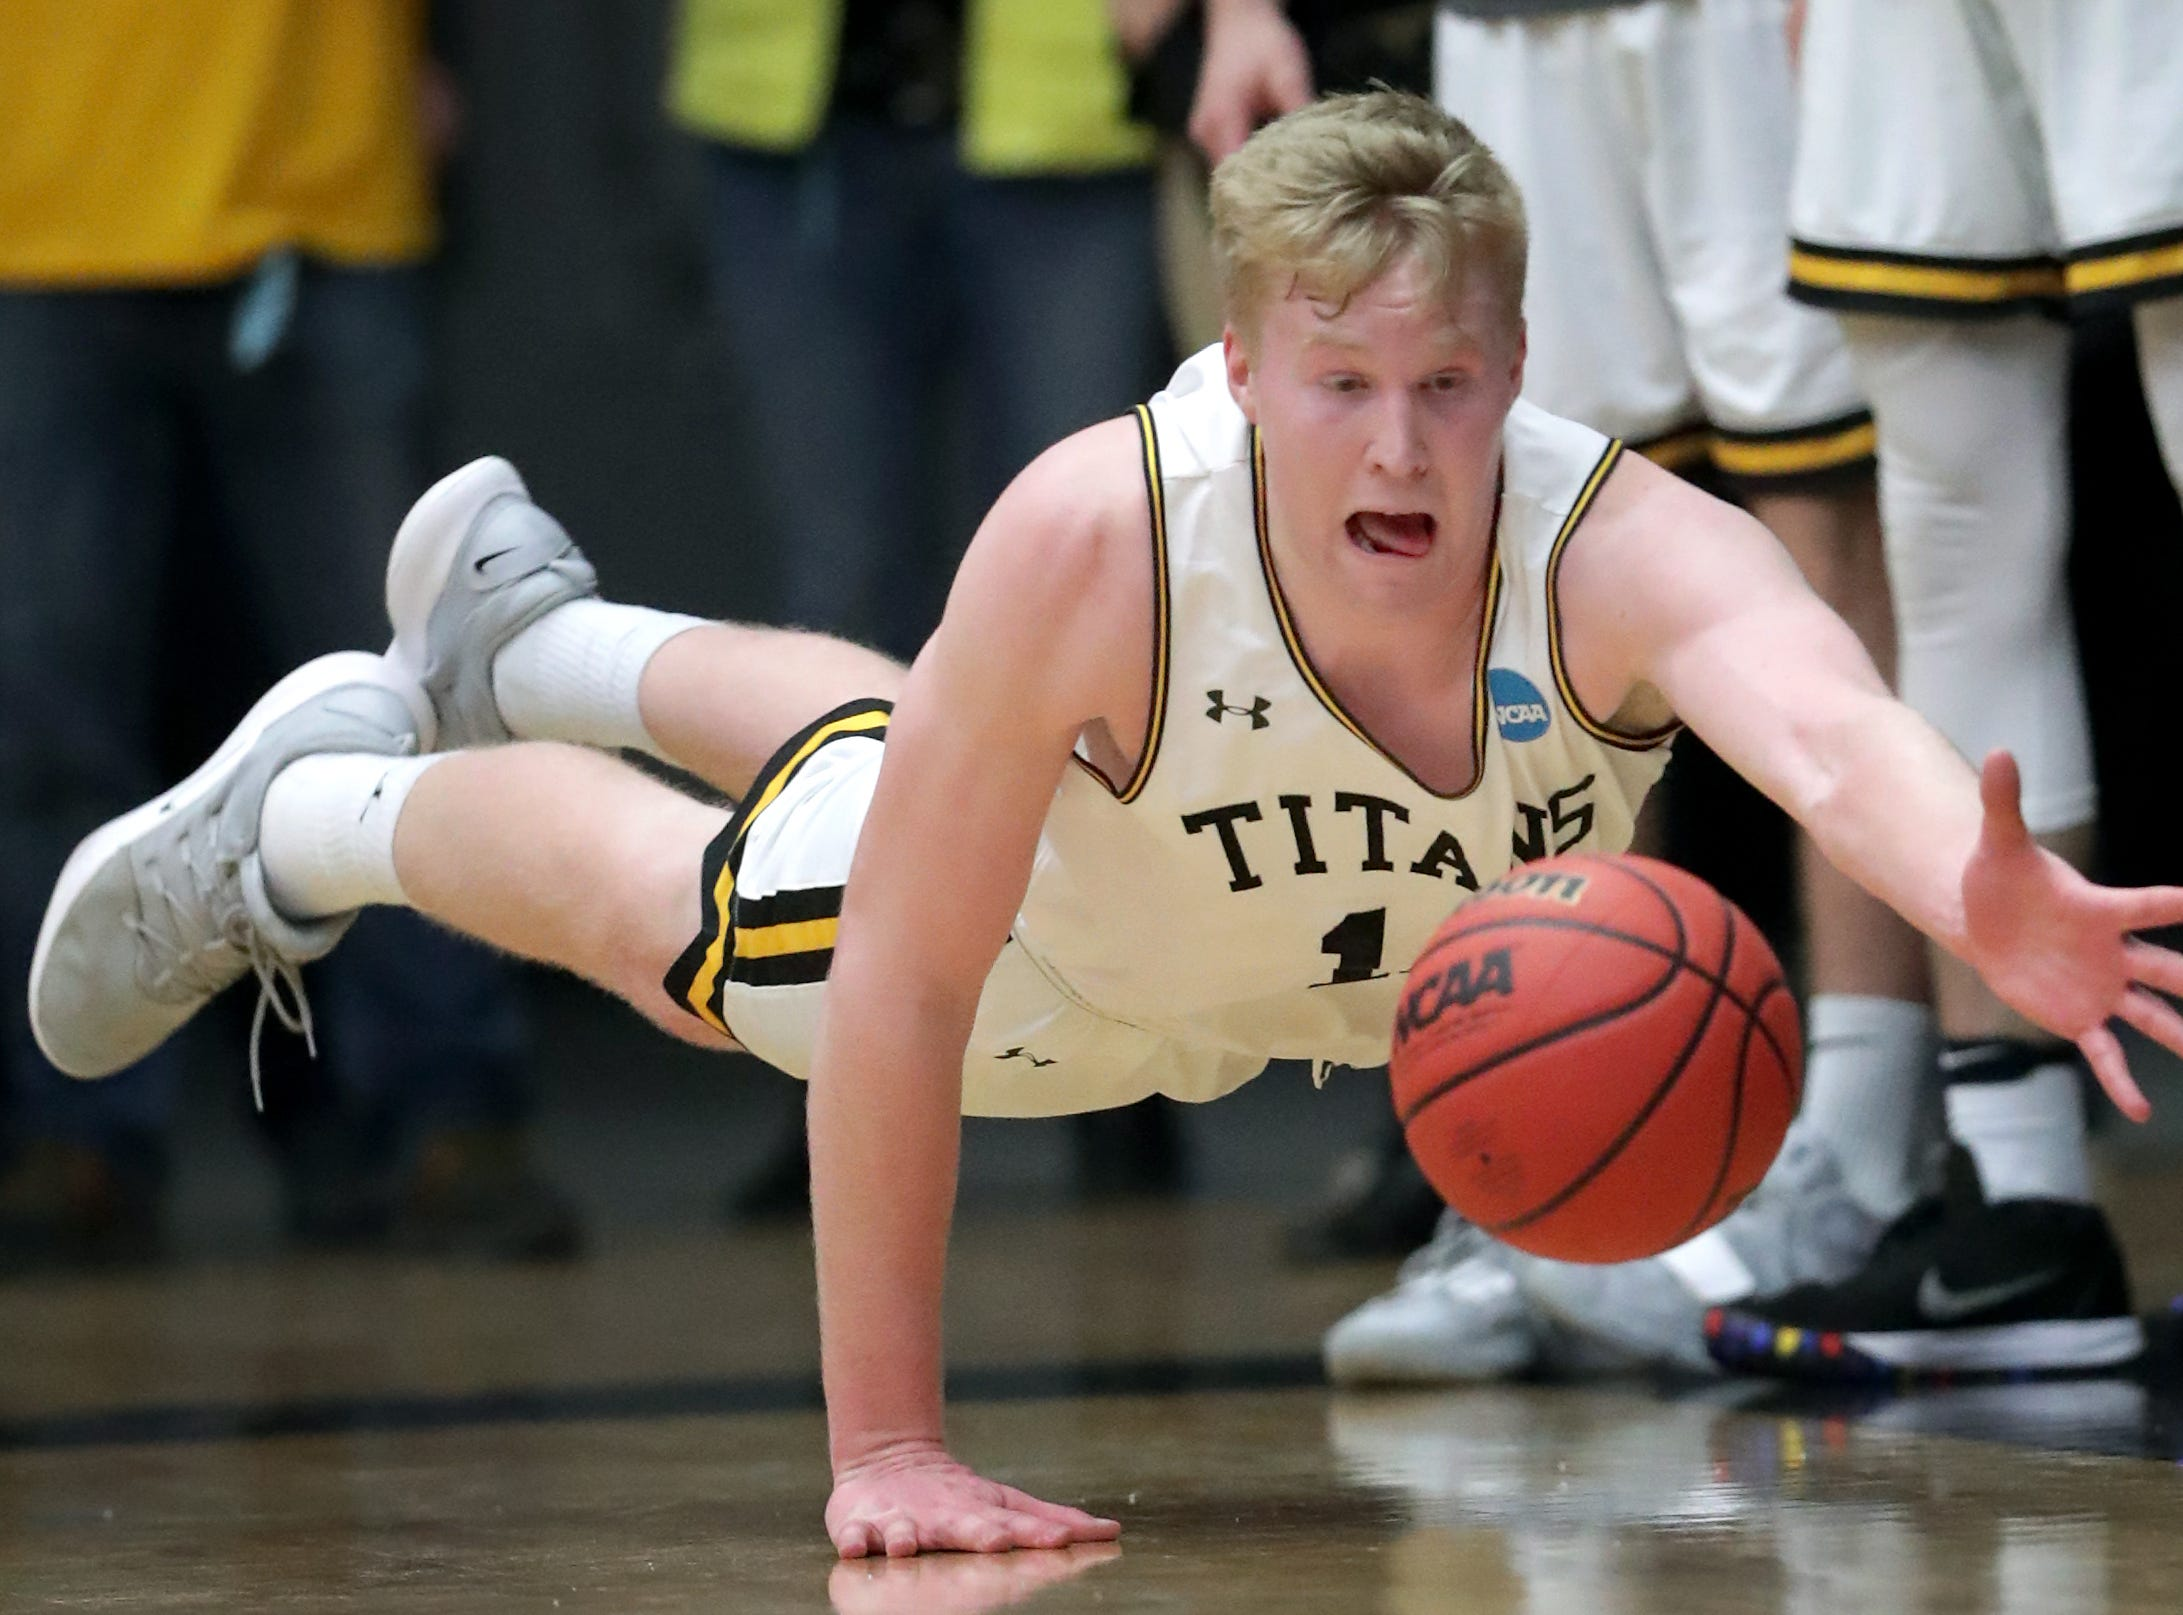 University of Wisconsin-Oshkosh's #14 Tommy Borta against Loras College-Iowa during their NCAA DIII  Basketball Championship sectional game on Friday, March 8, 2019, at the Kolf Sports Center in Oshkosh, Wis. Oshkosh defeated Loras 86 to 75.Wm. Glasheen/USA TODAY NETWORK-Wisconsin.